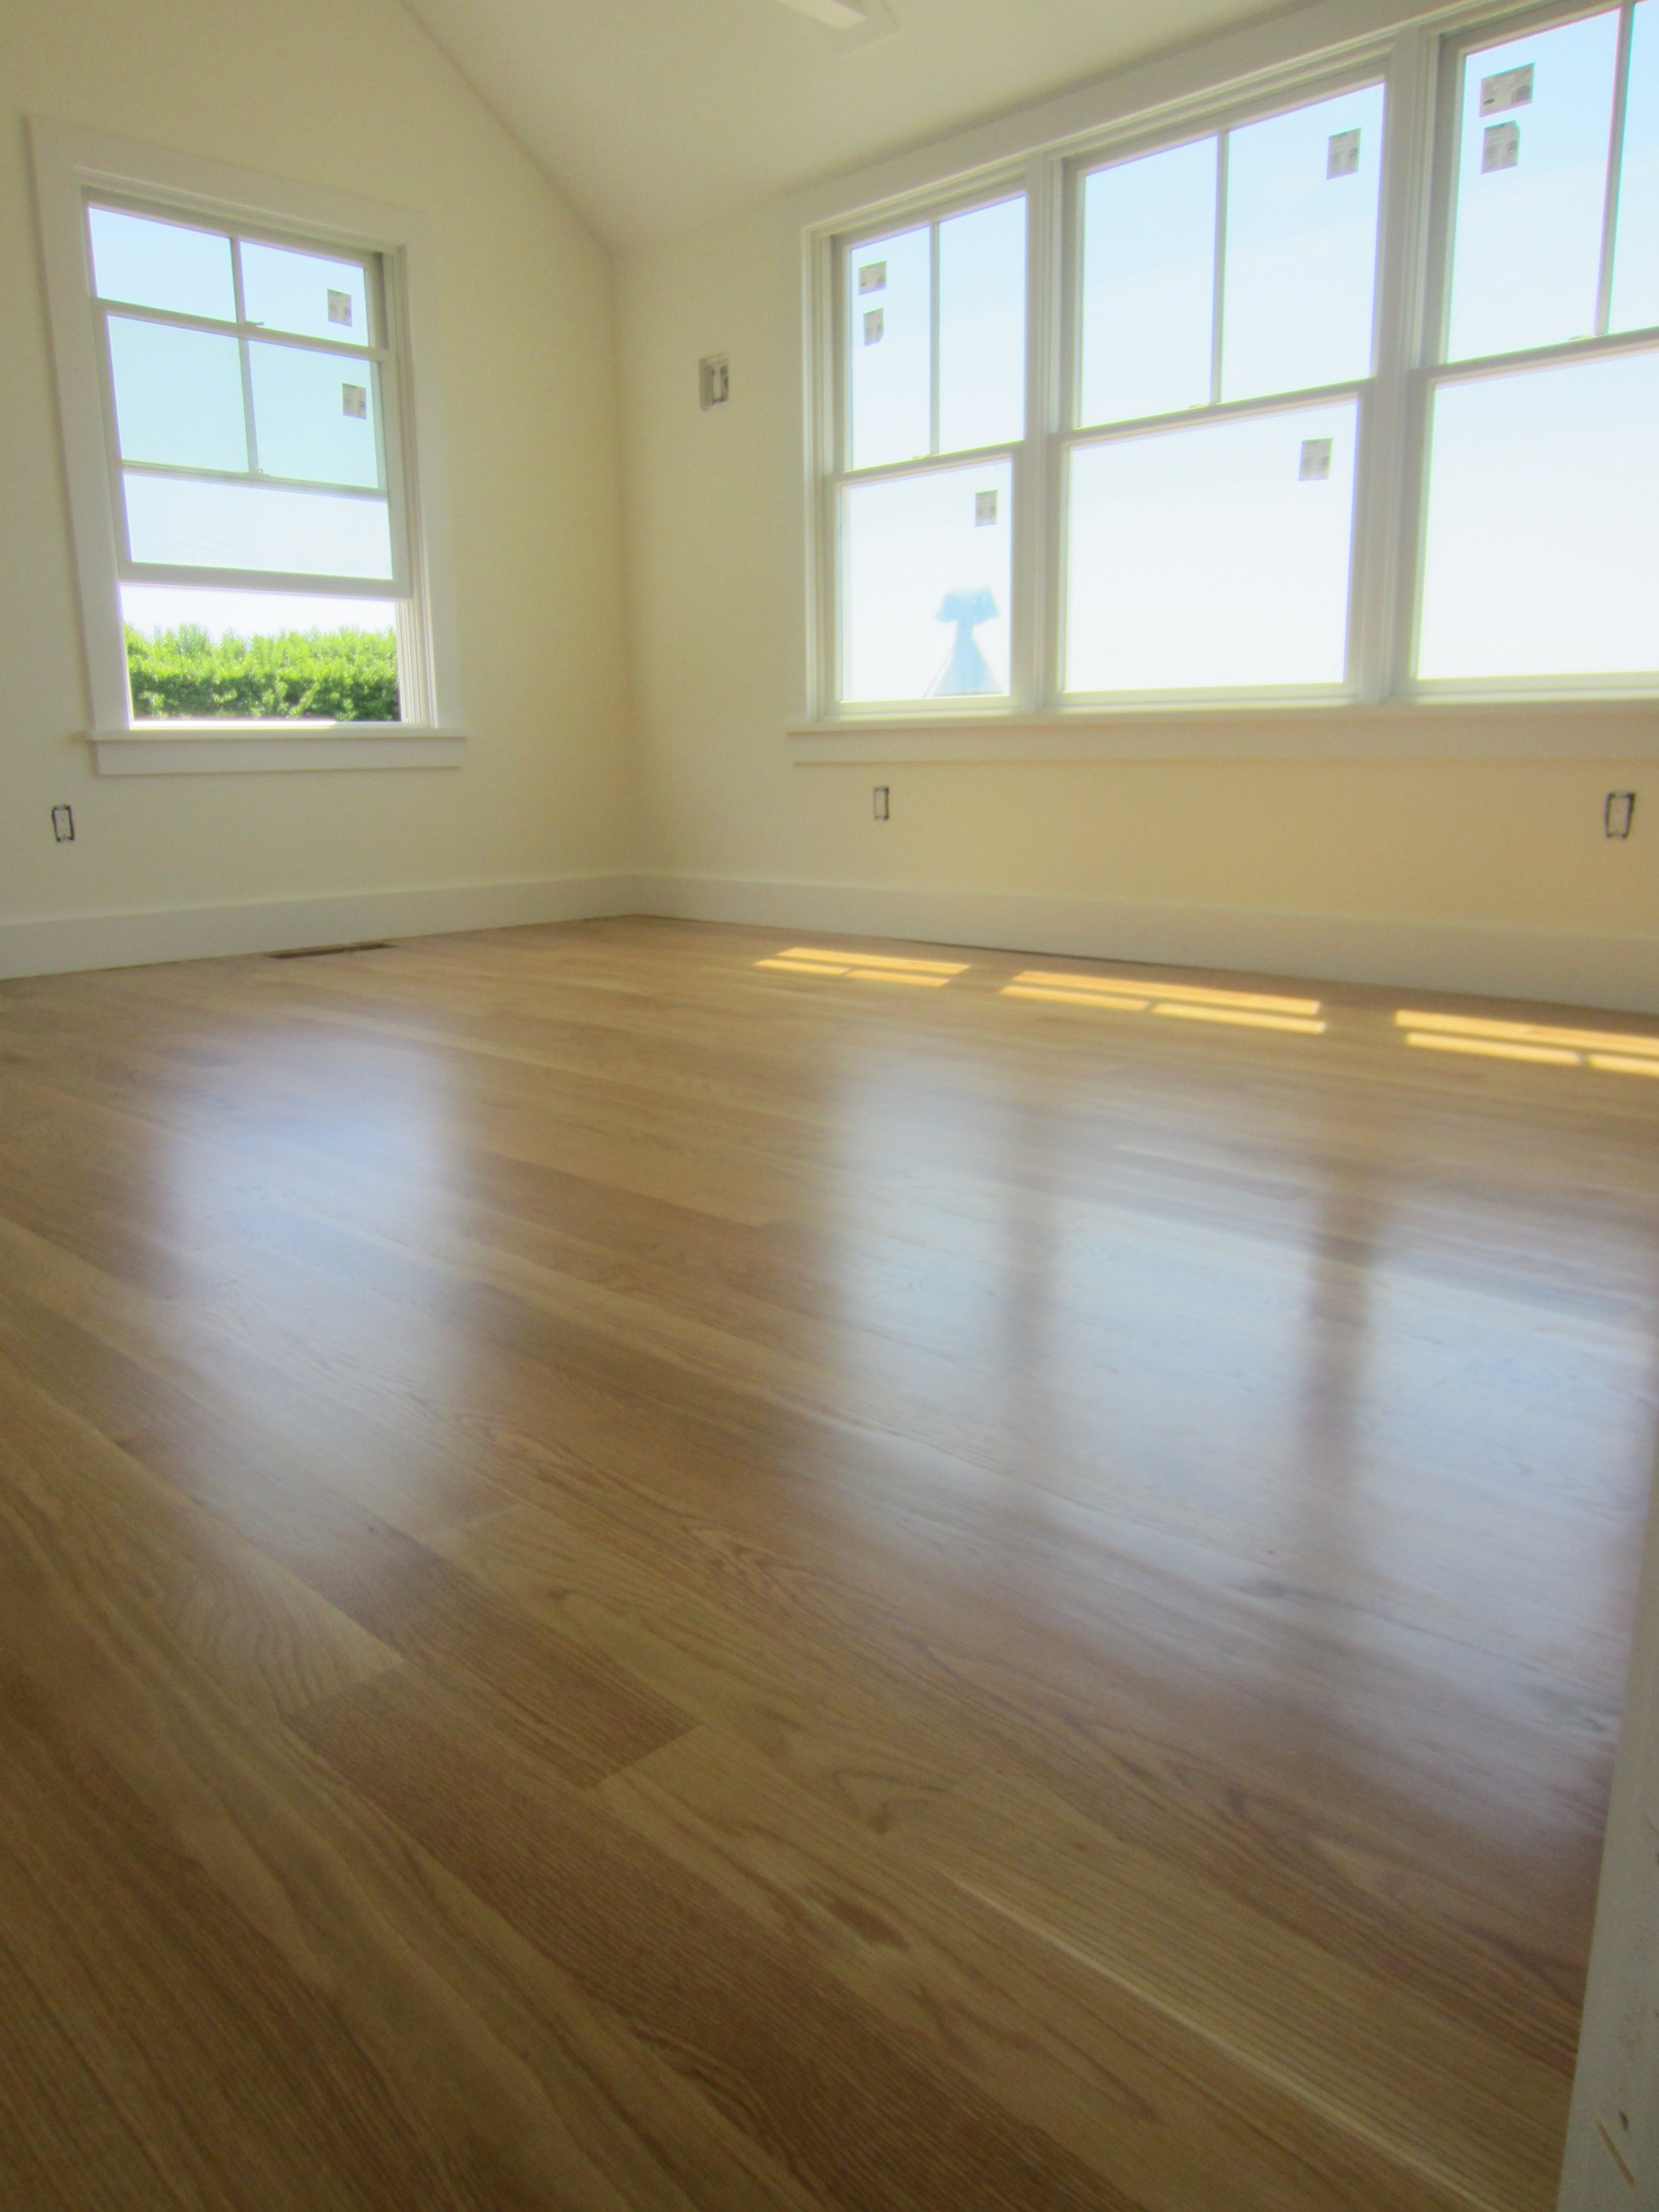 East Moriches:  White Oak floors finished with Oil polyurethane